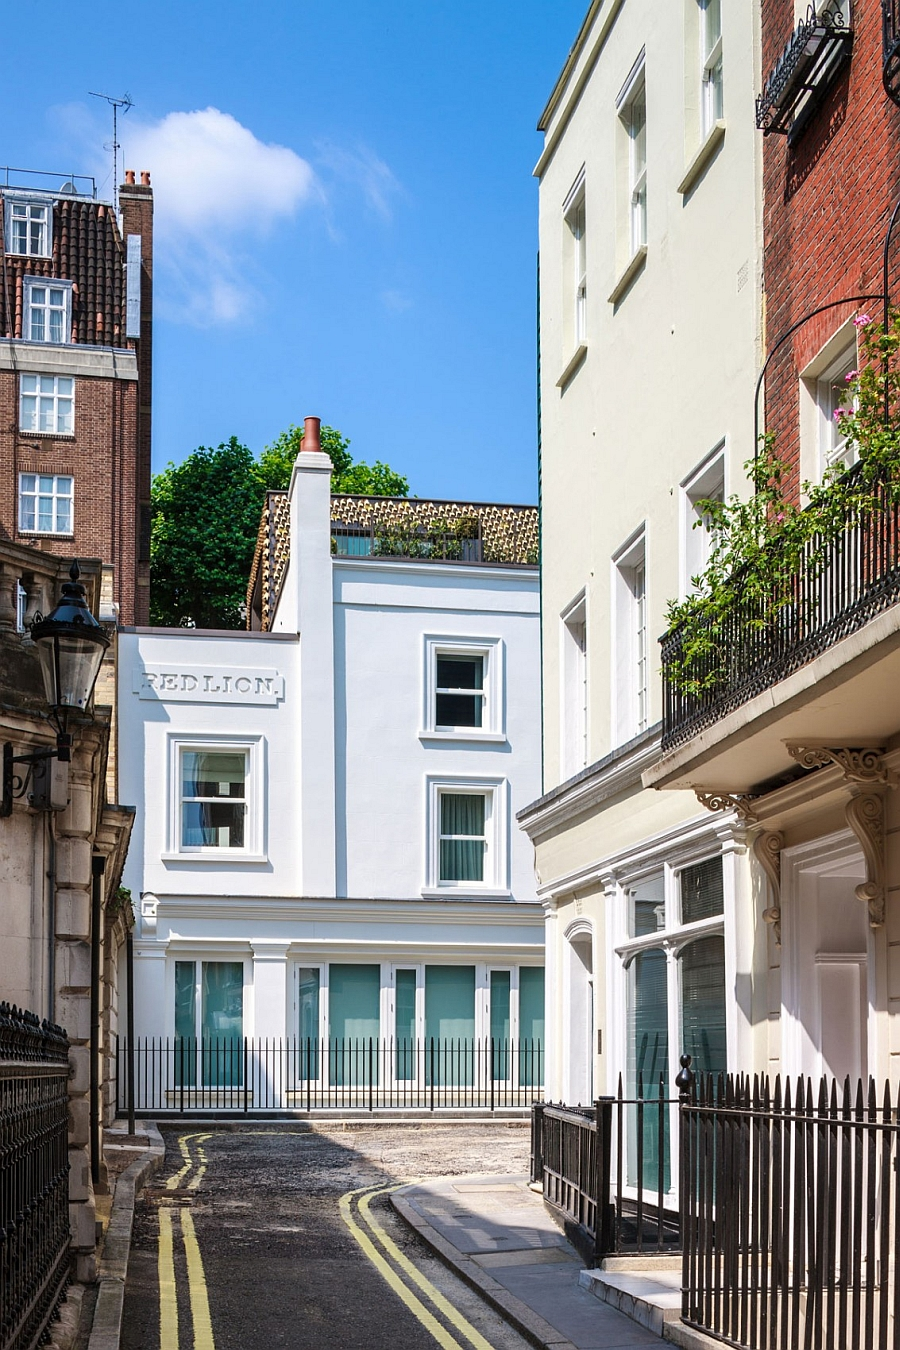 Mayfair House in Waverton Street London Elegant London Residence Dazzles With A Glittering Bronze Leaf Facade!